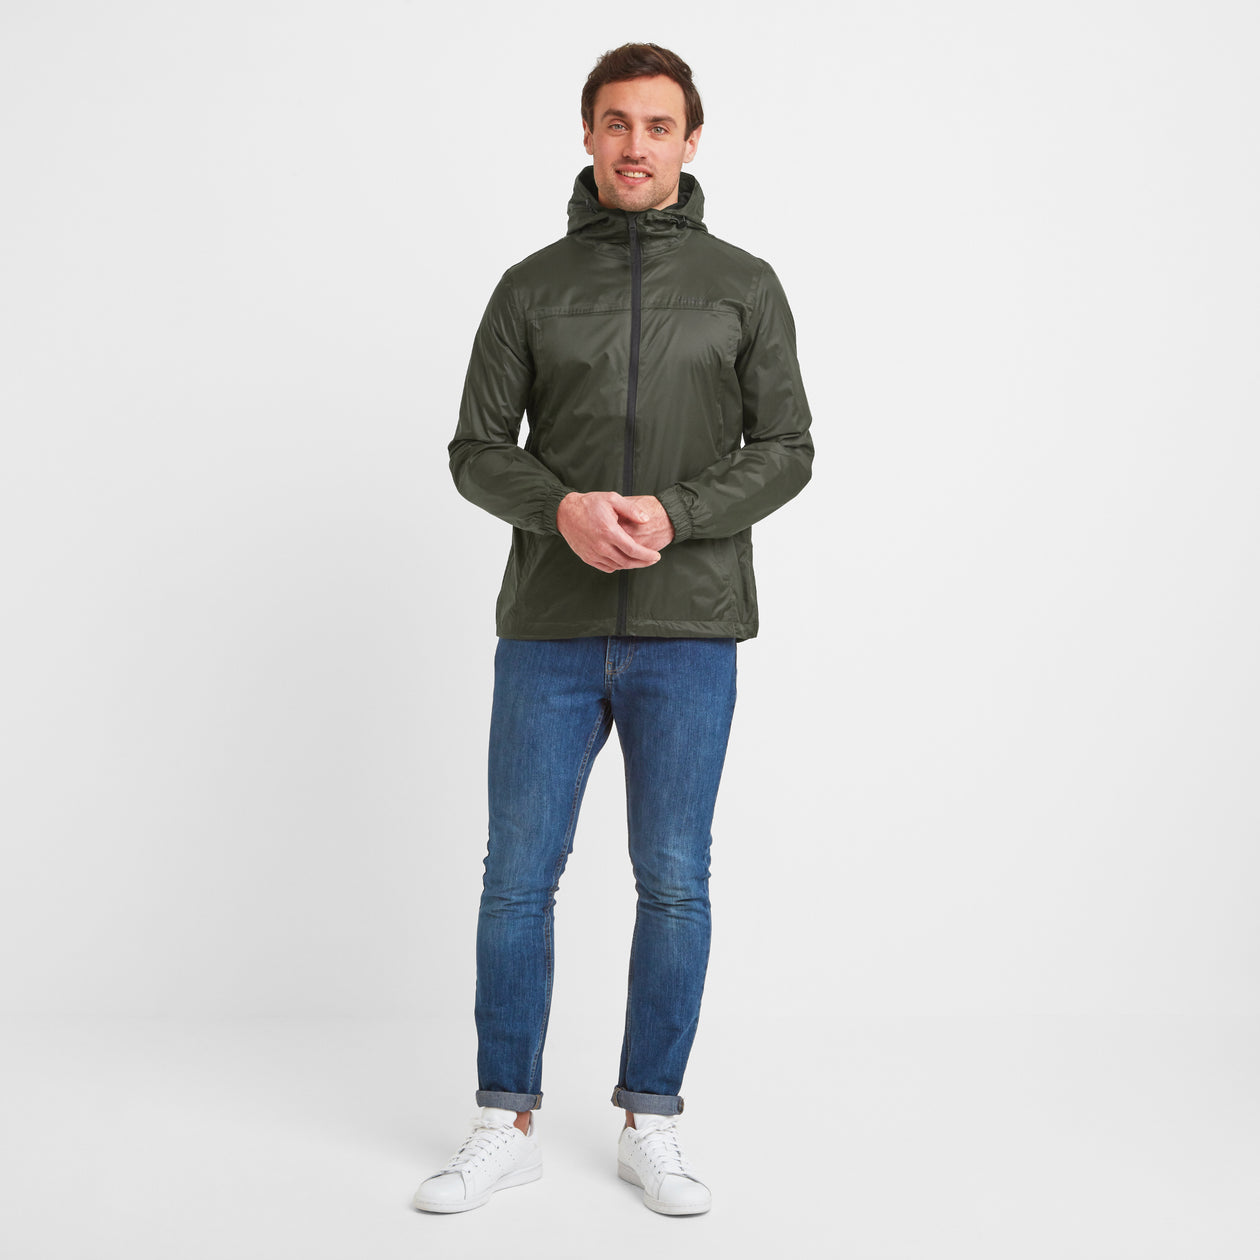 Craven Mens Waterproof Packaway Jacket - Dark Khaki image 4